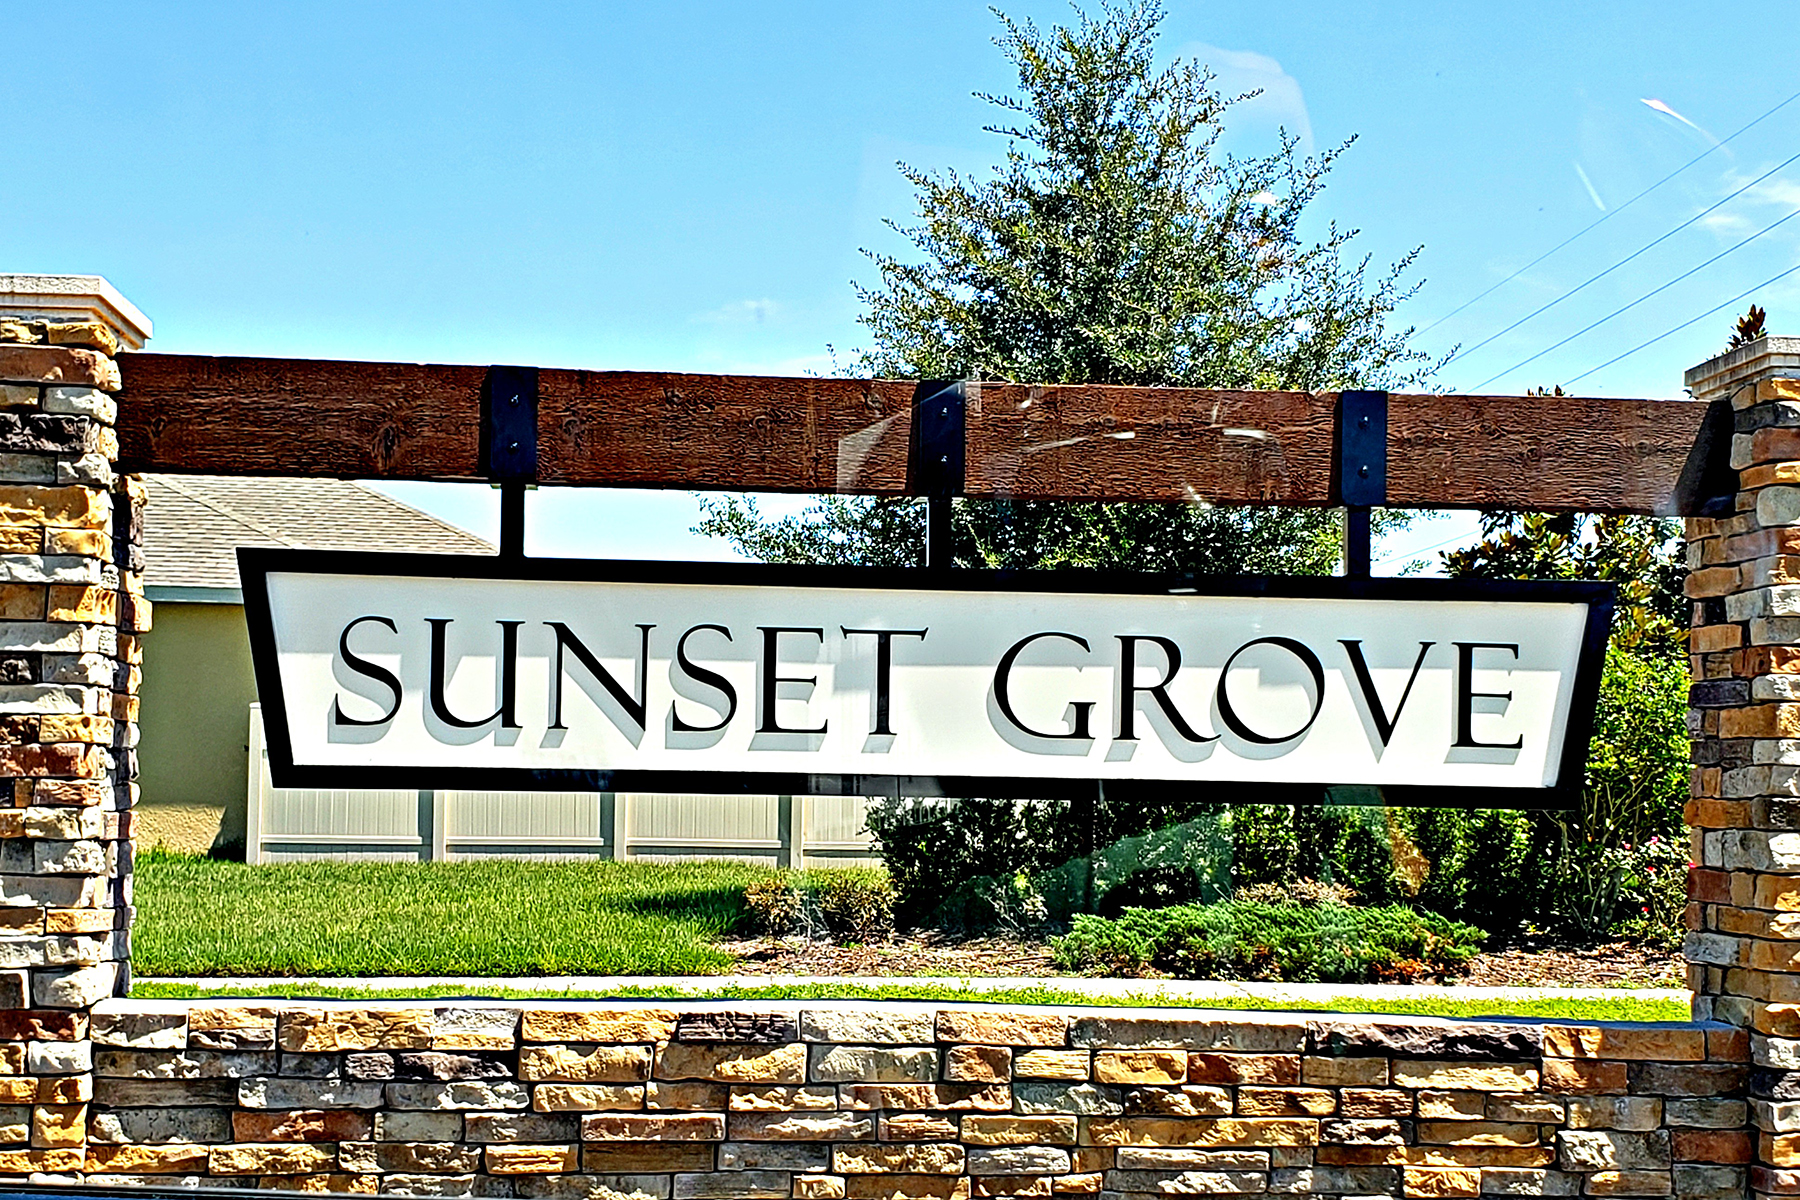 Sunset Grove Entrance